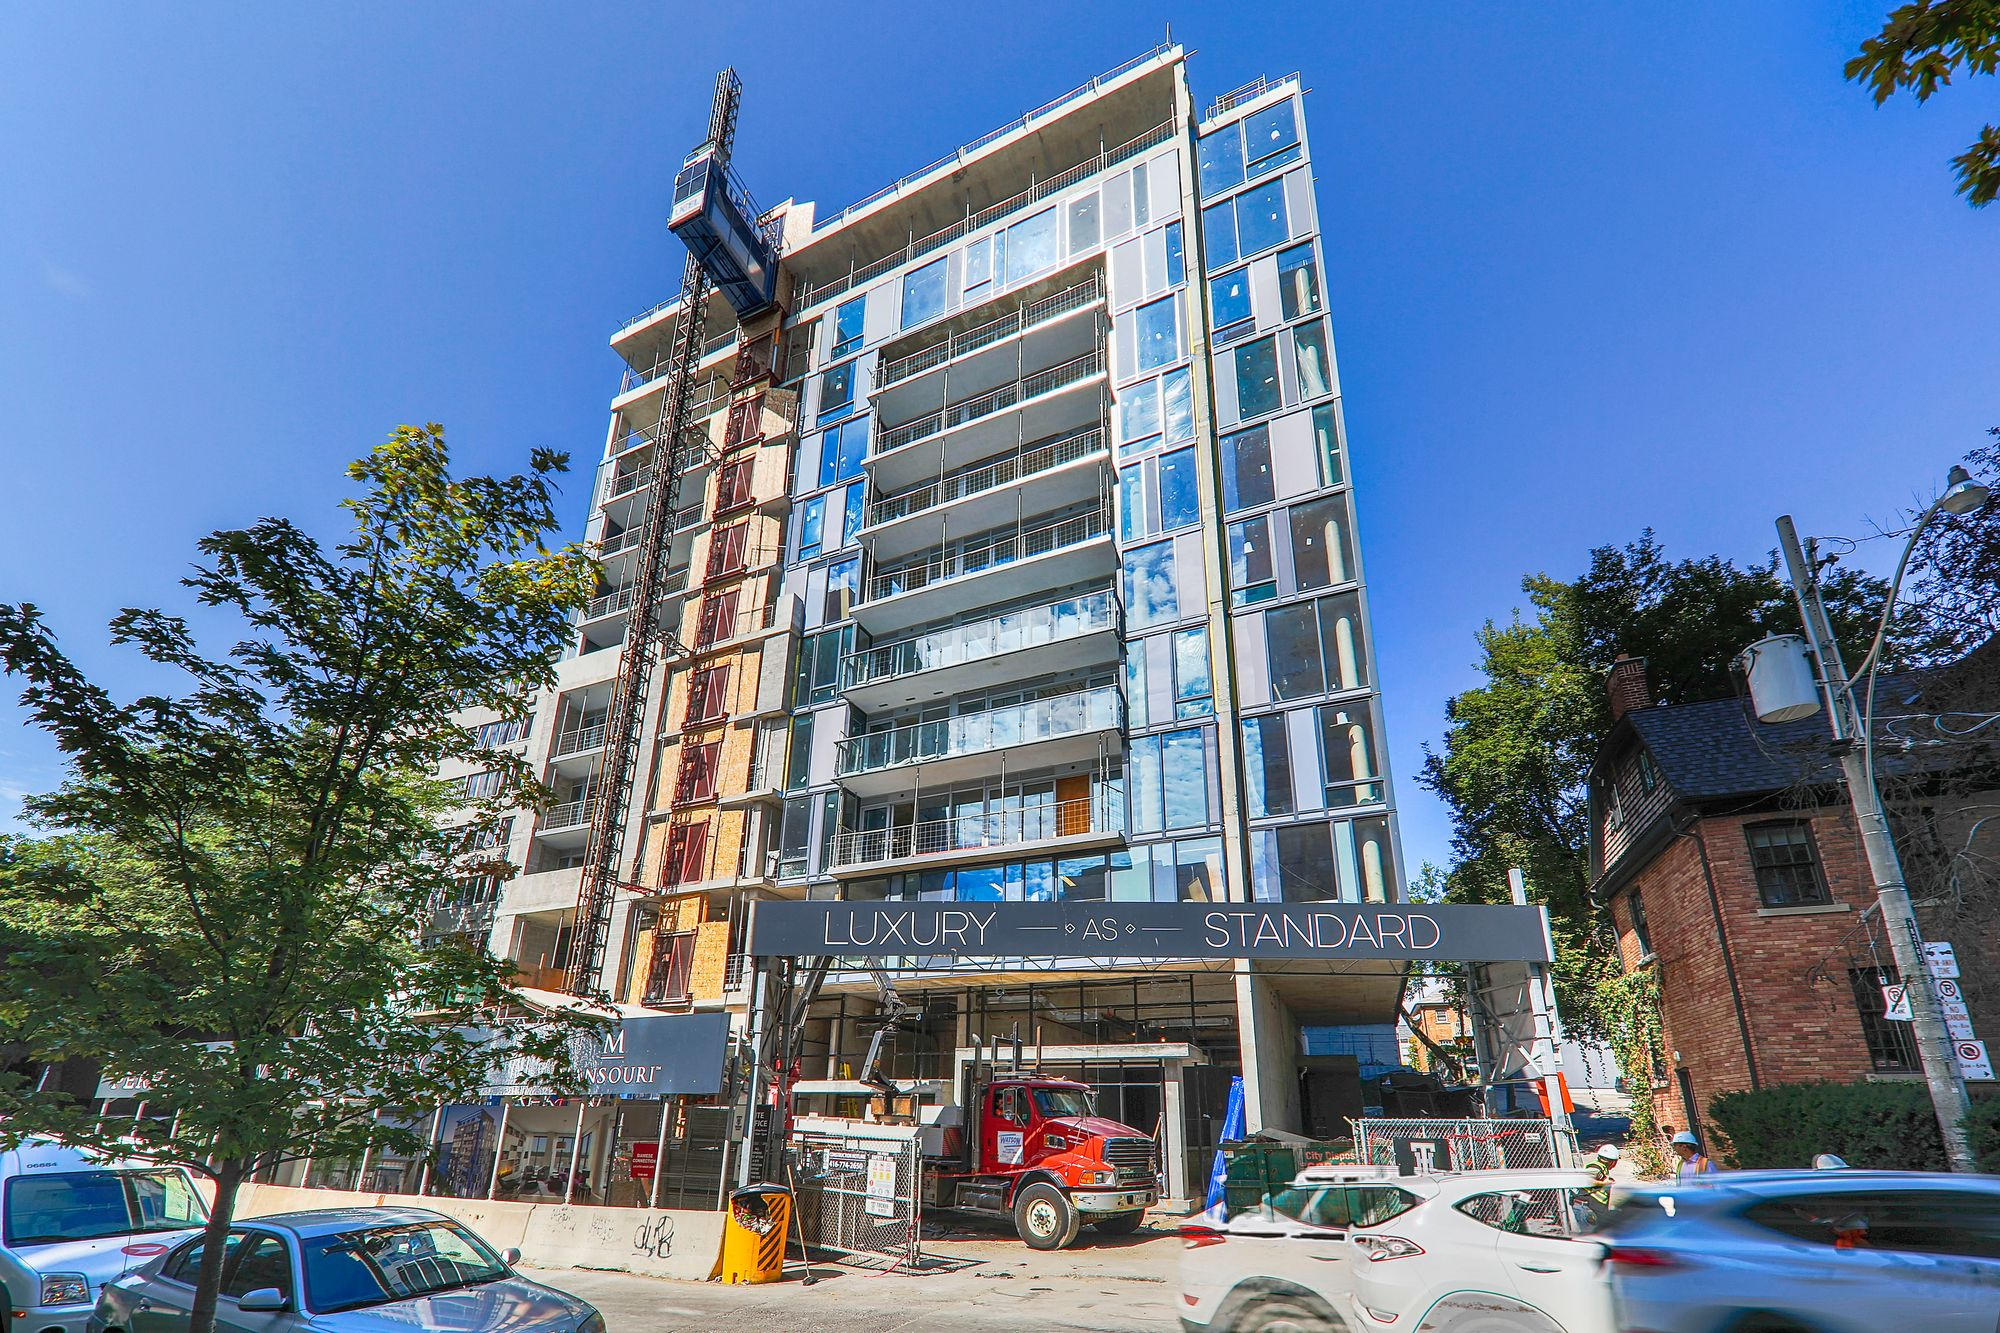 The Perry at 128 Pears Ave. This condo is located in  Downtown, Toronto - image #2 of 2 by Strata.ca